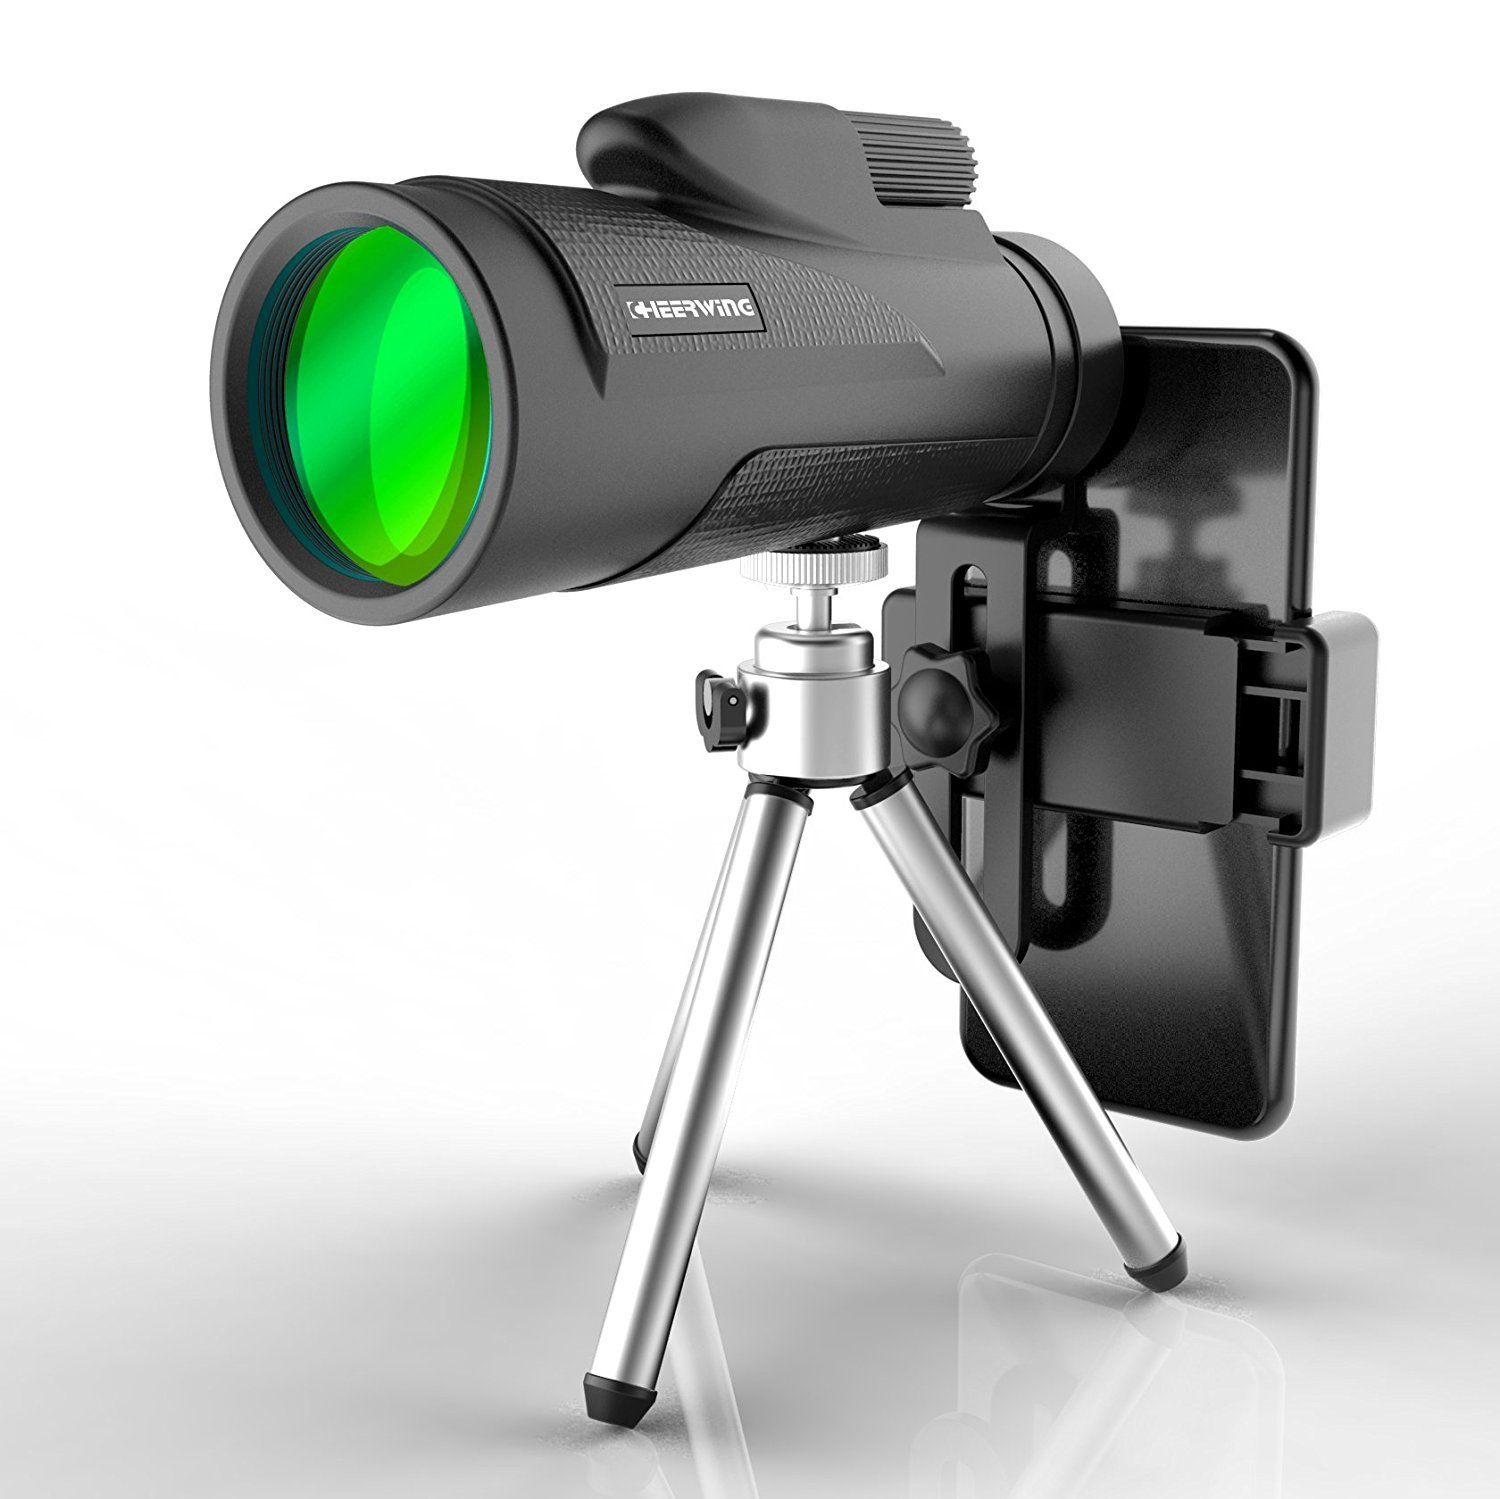 Cheerwing 12X50 High Power BAK-4 Prism Monocular Telescope with Tripods and Smartphone Holder for Sports Hunting Camping Travelling Wildlife Watching and Concert